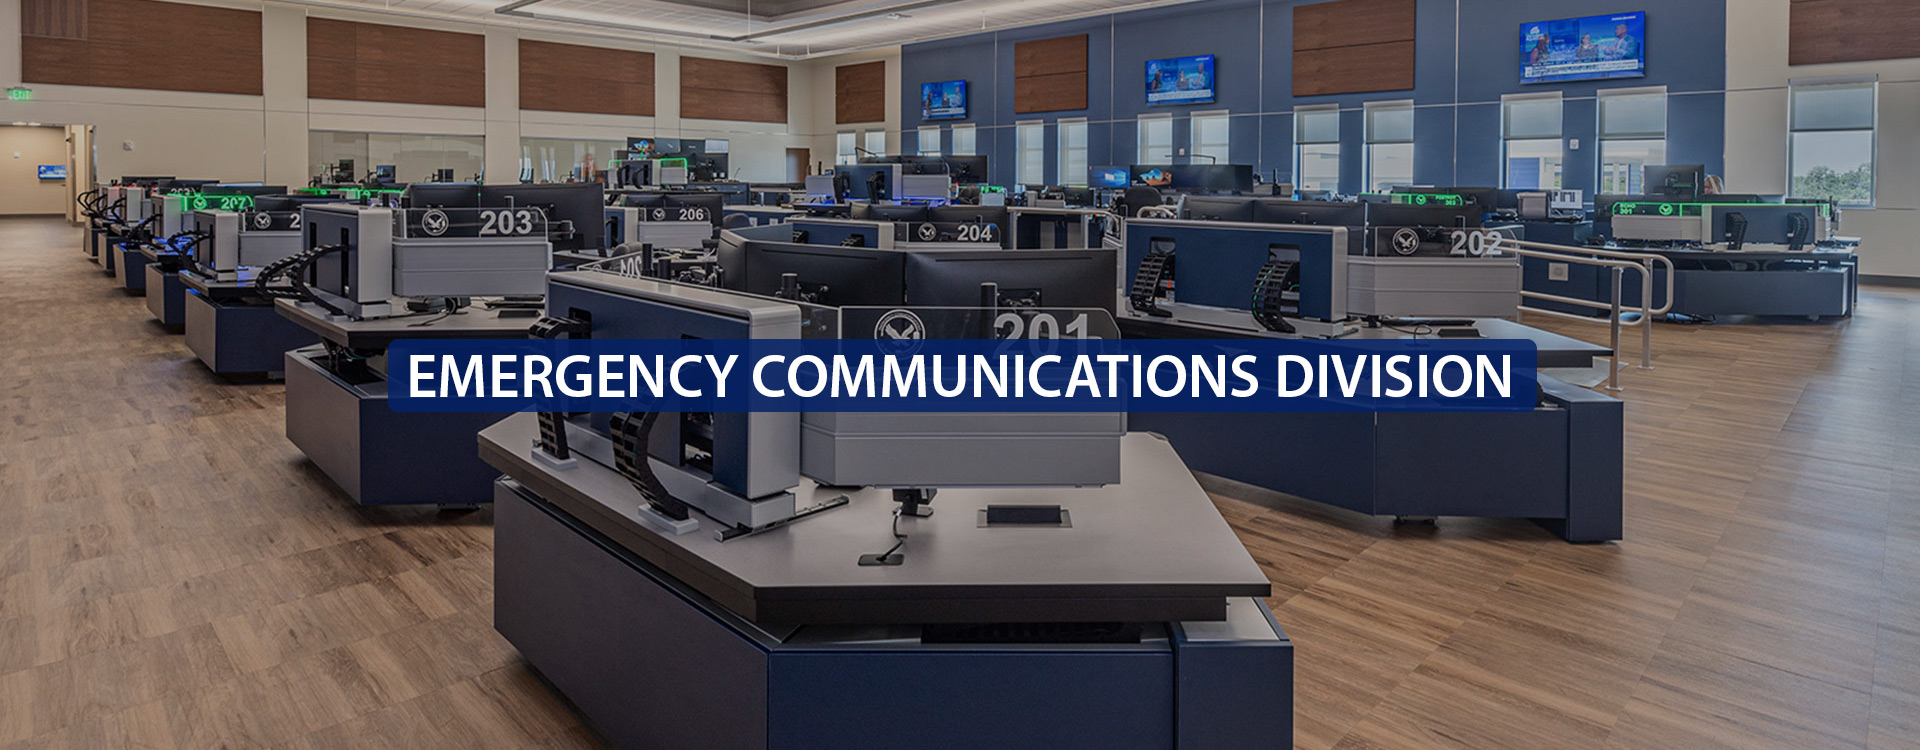 Emergency Communications Division